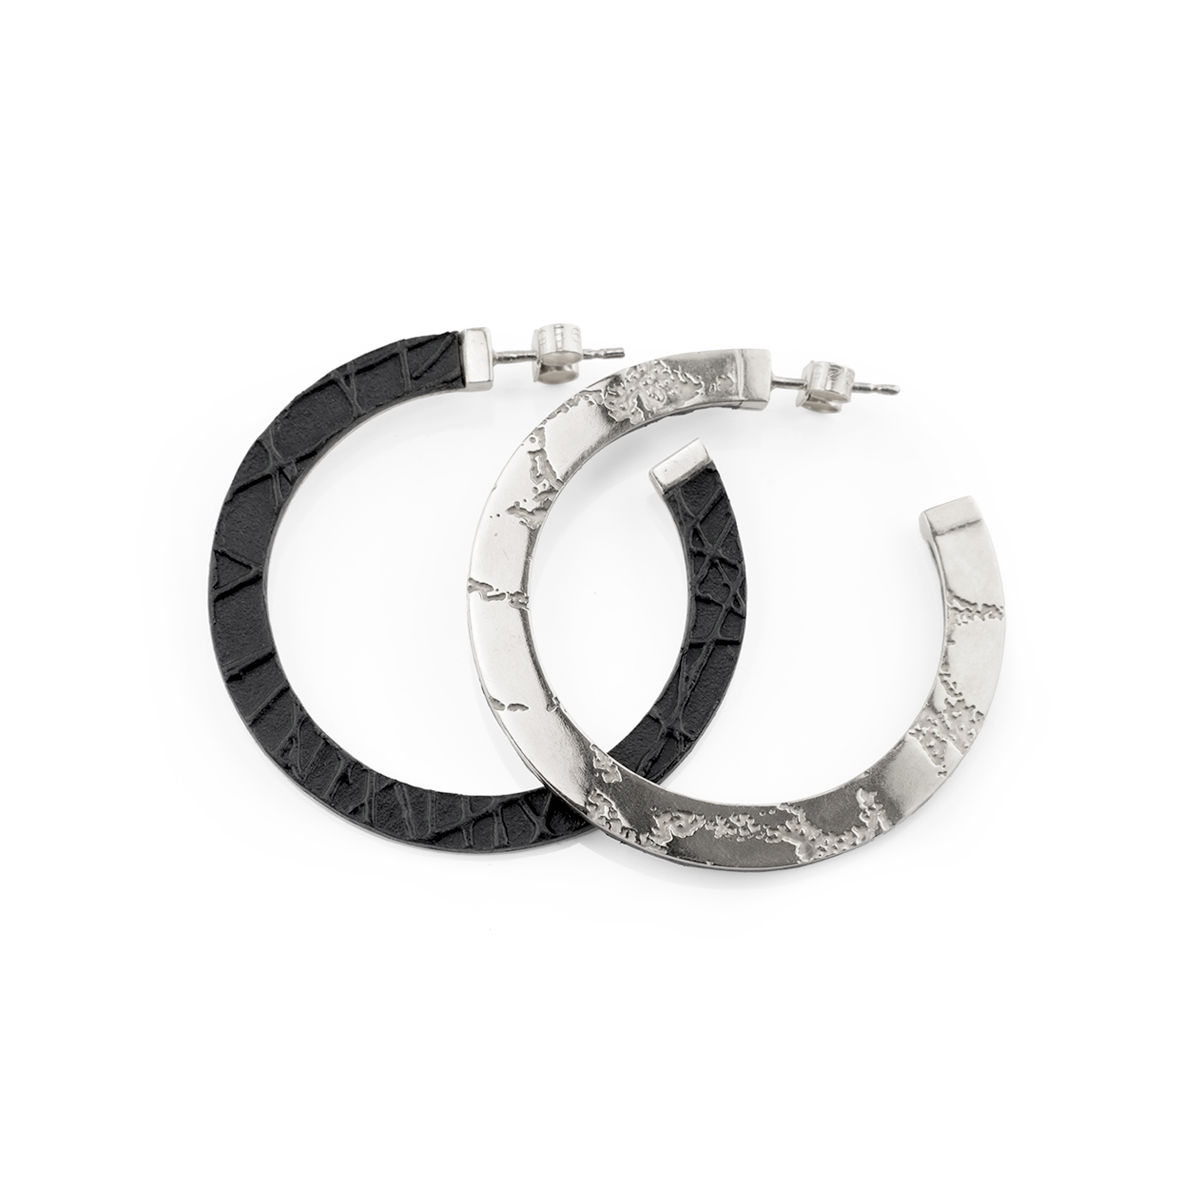 SKIN textured hoop earrings - silver and black - product images  of